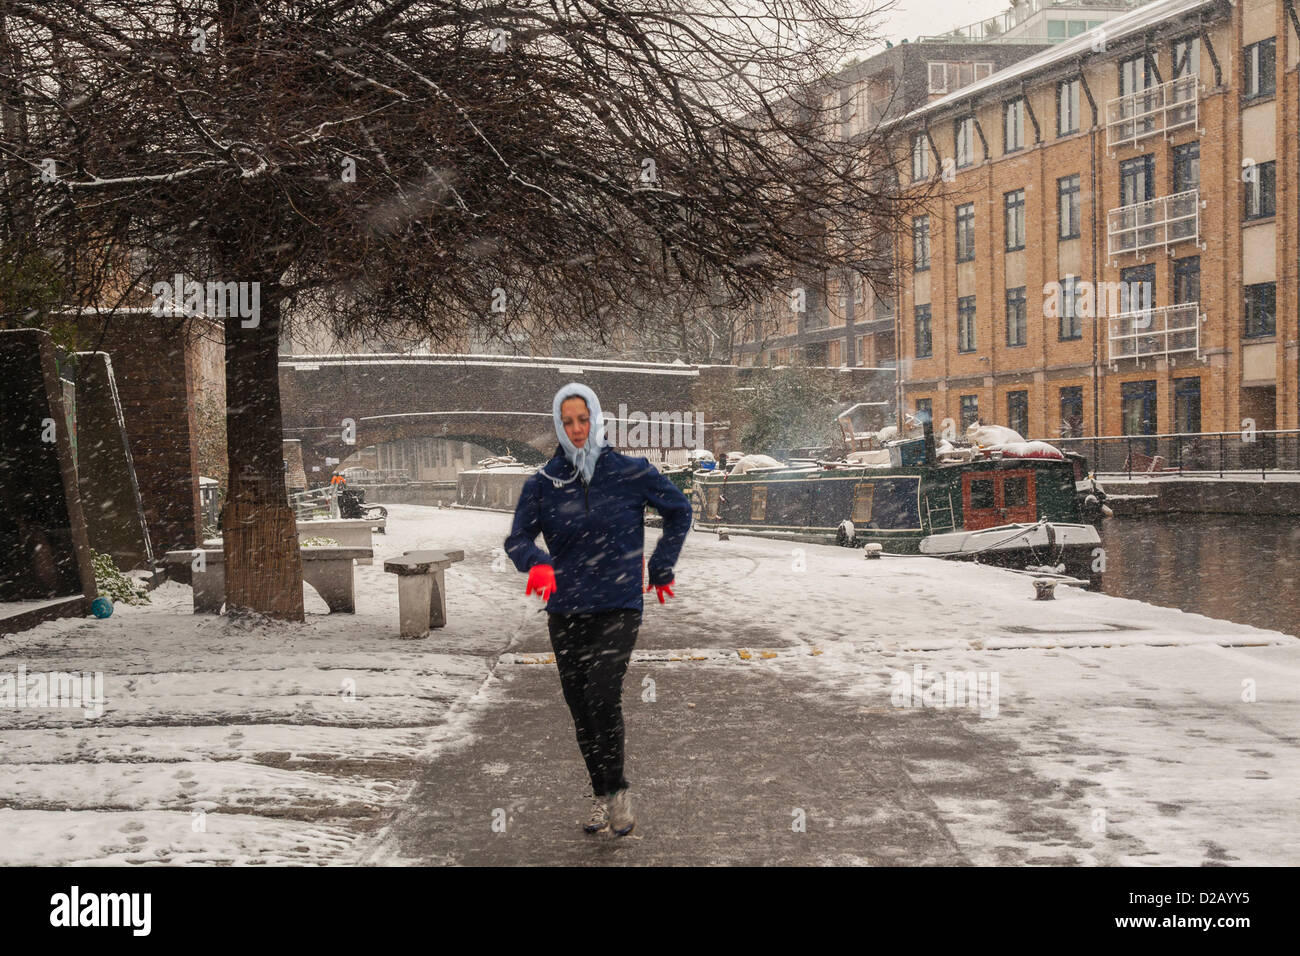 London, UK. 18th January 2013. Jogger braves the freezing temperatures along Regent's Canal, Central London, - Stock Image